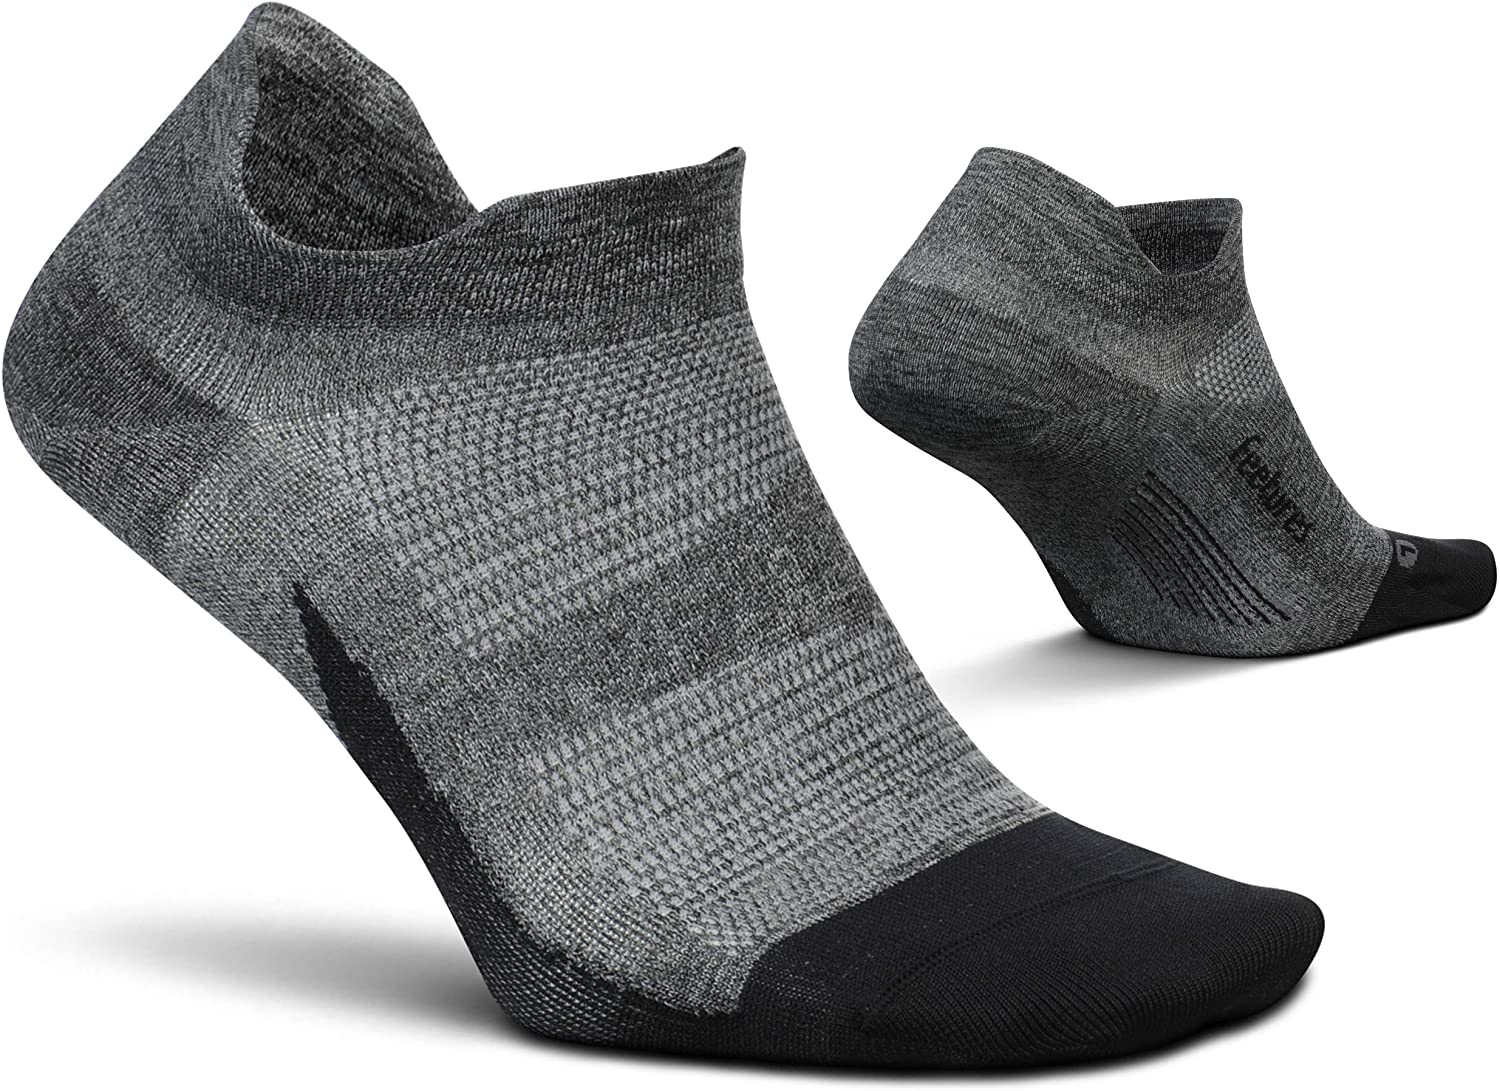 Feetures Unisex Elite Ultra Light No Show Tab Sock Solid